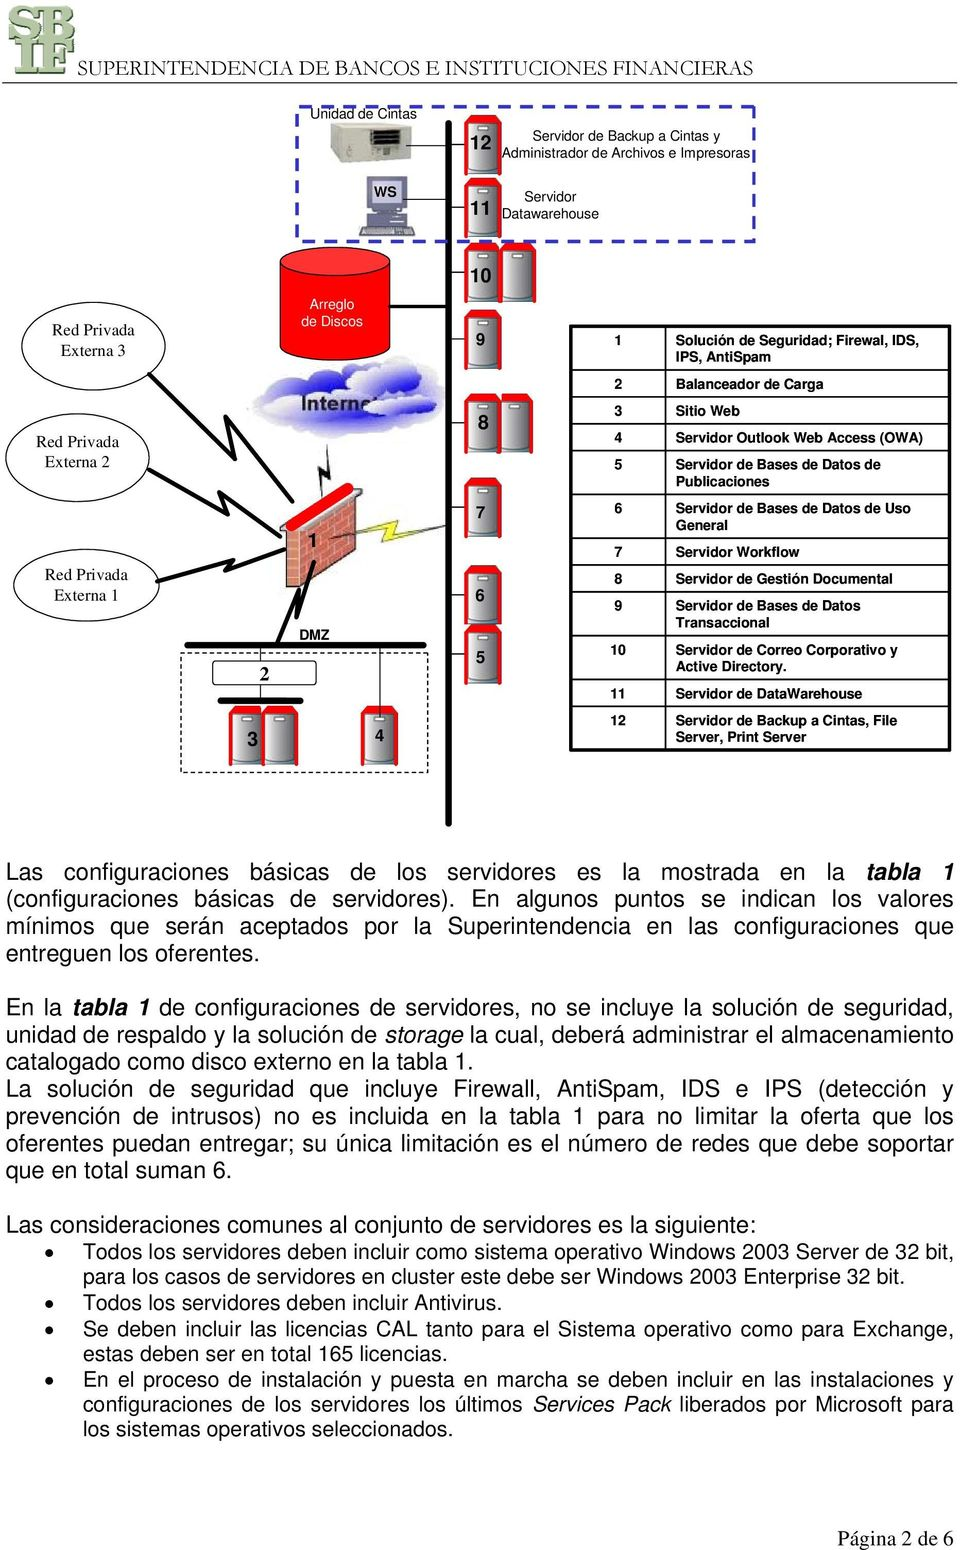 General Workflow de Gestión Documental de Bases de Datos Transaccional de Correo Corporativo y Active Directory.